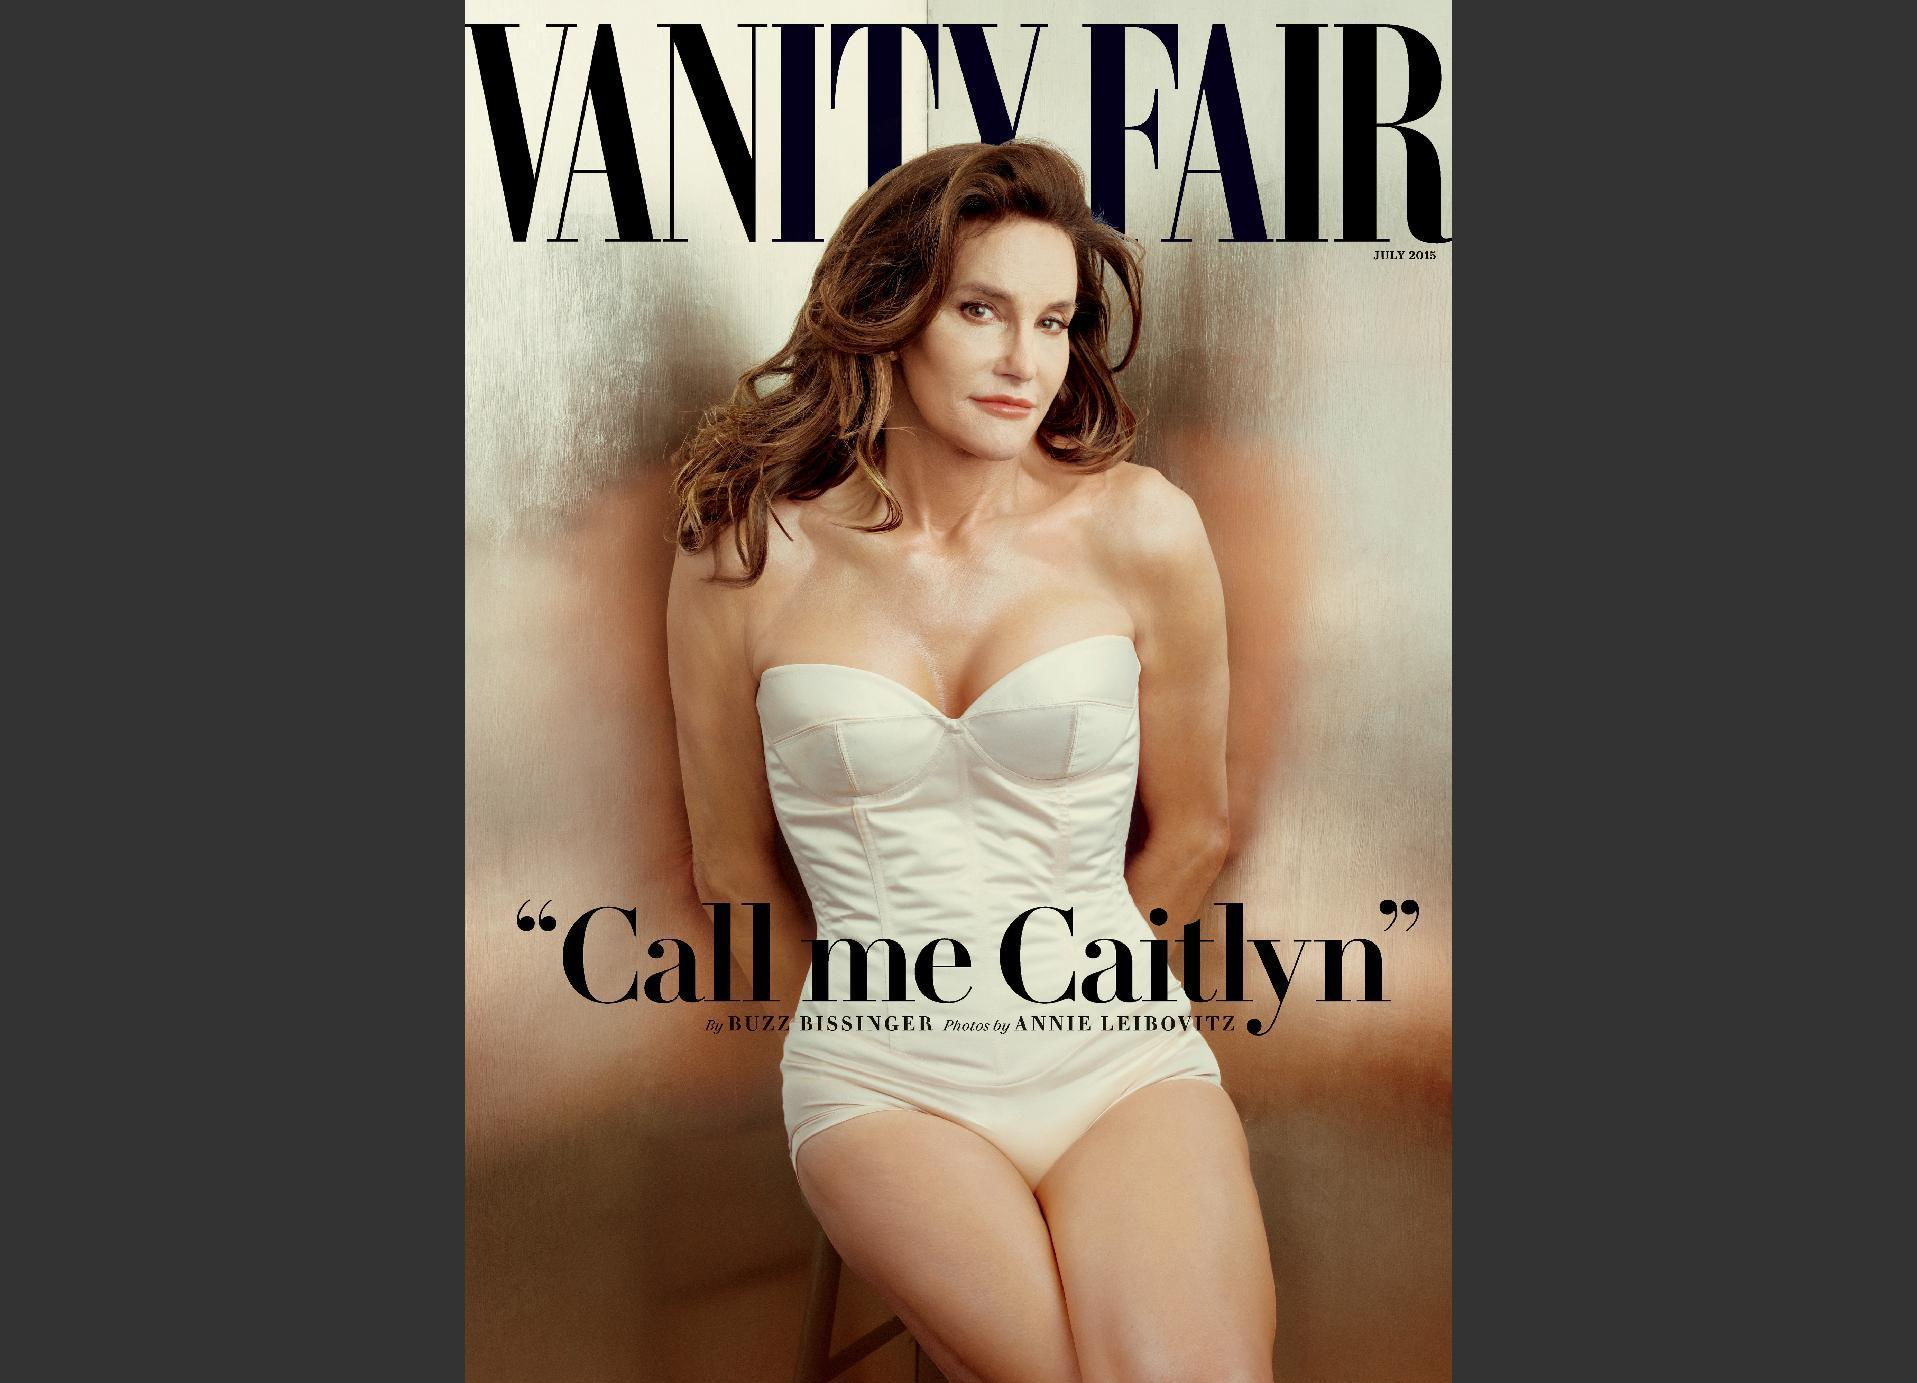 Caitlyn Jenner debut poses challenges for media